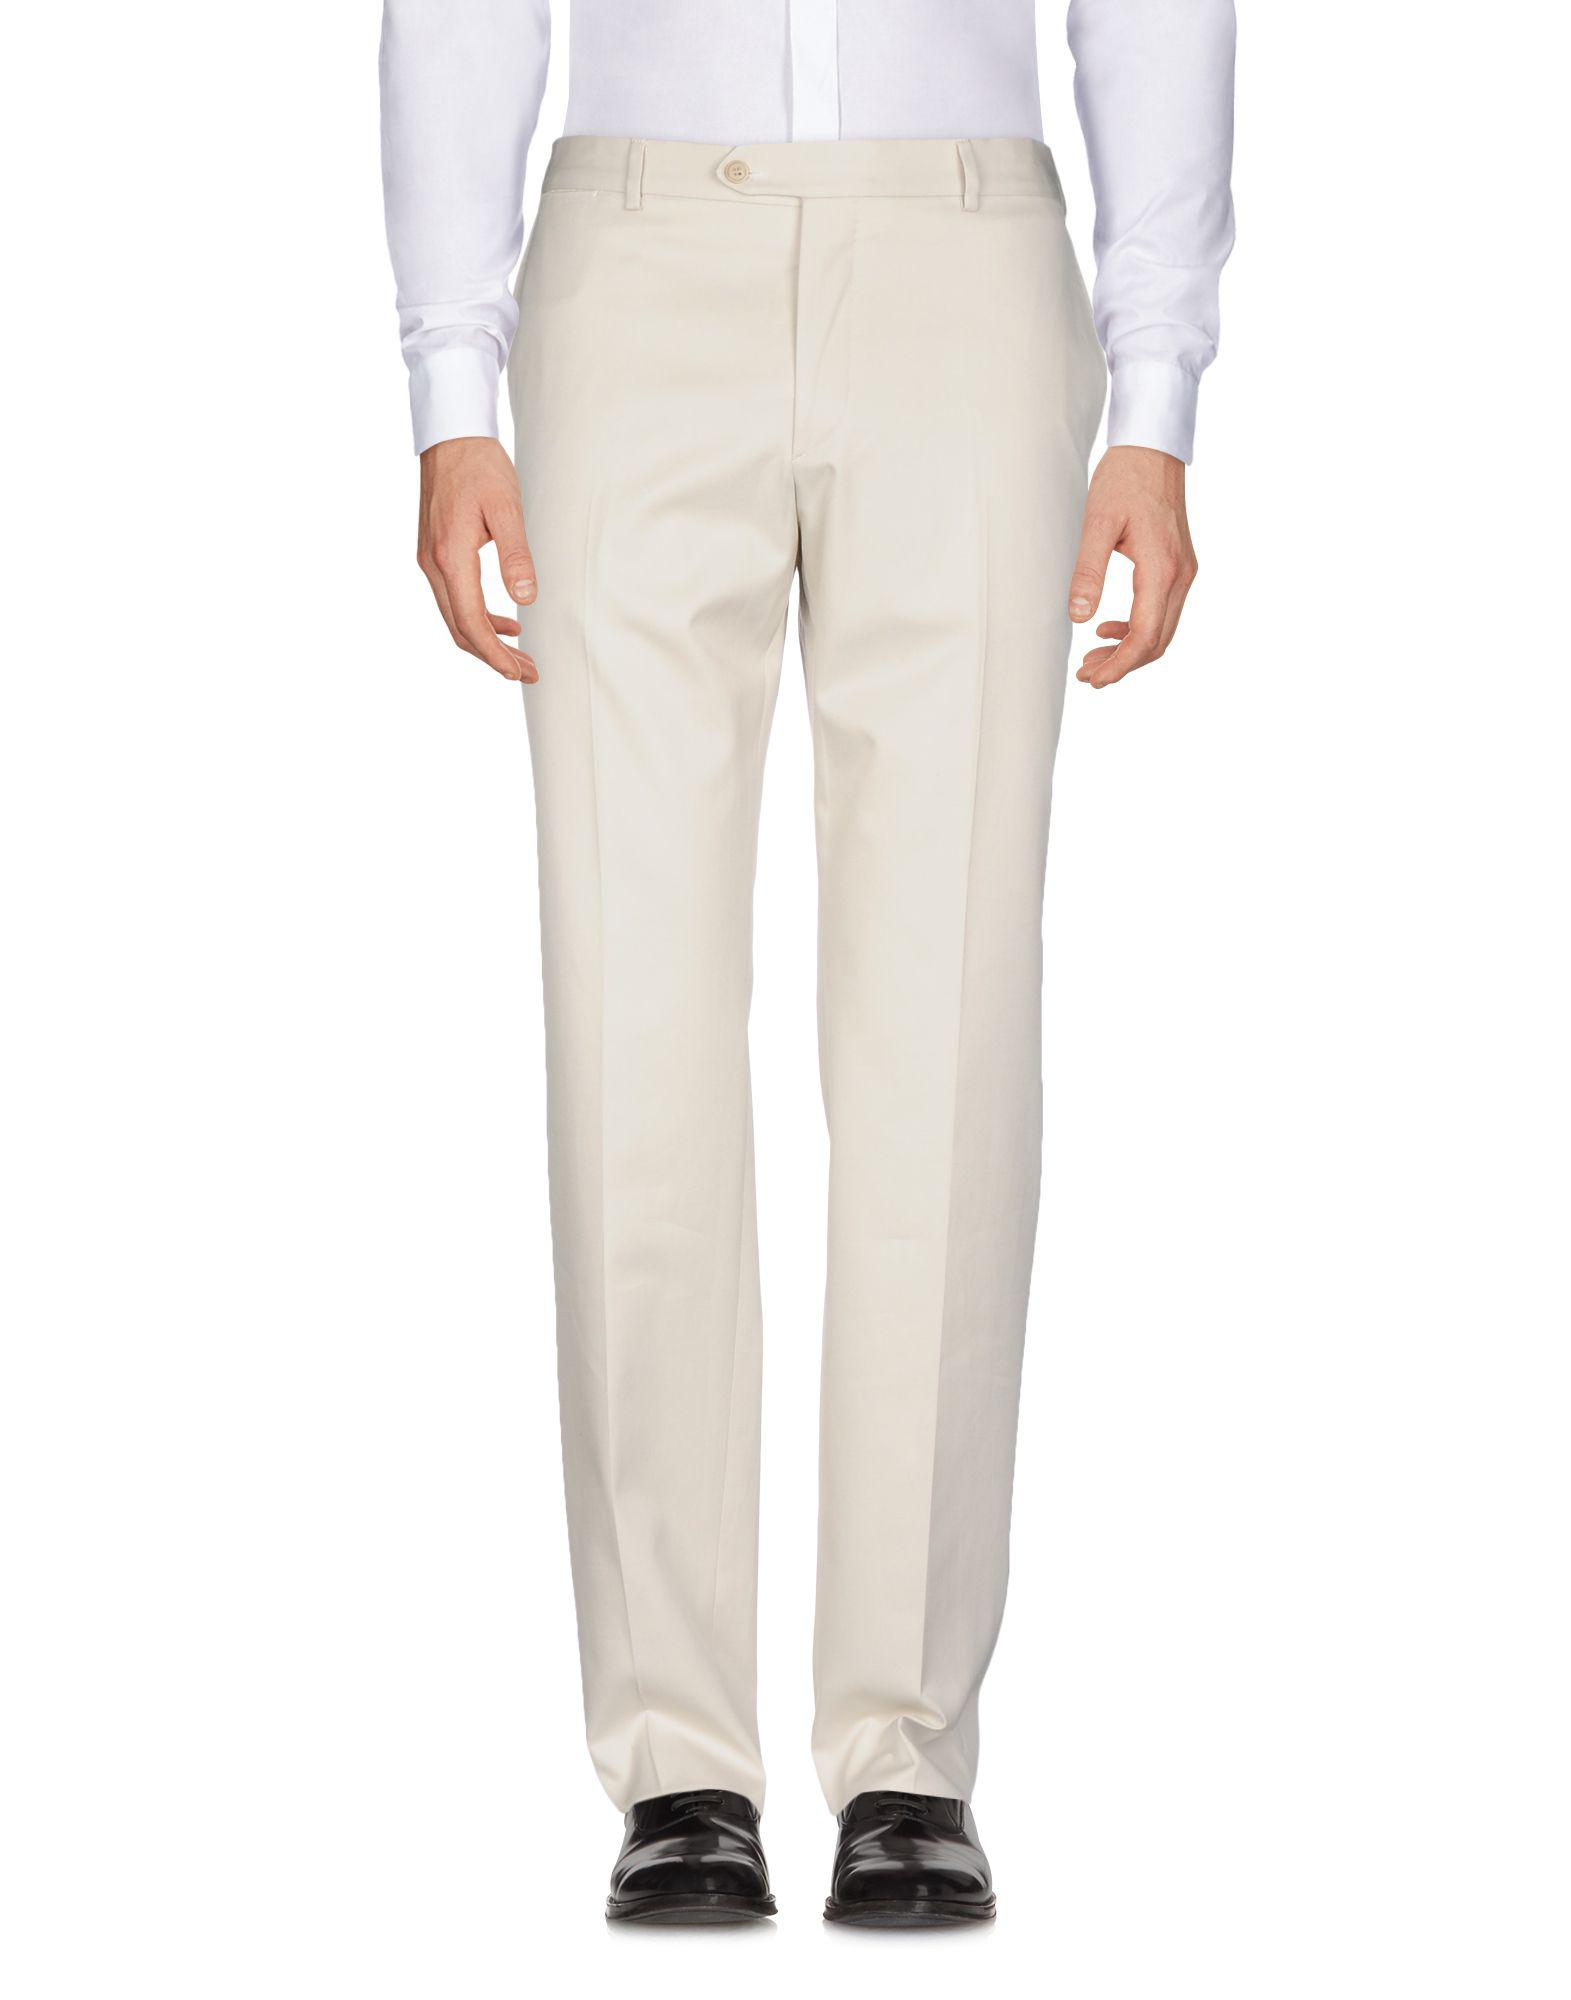 Outlet Enjoy TROUSERS - Casual trousers Luigi Bianchi Mantova Best Cheap Price Sale Affordable Clearance Manchester suntXzYzq6